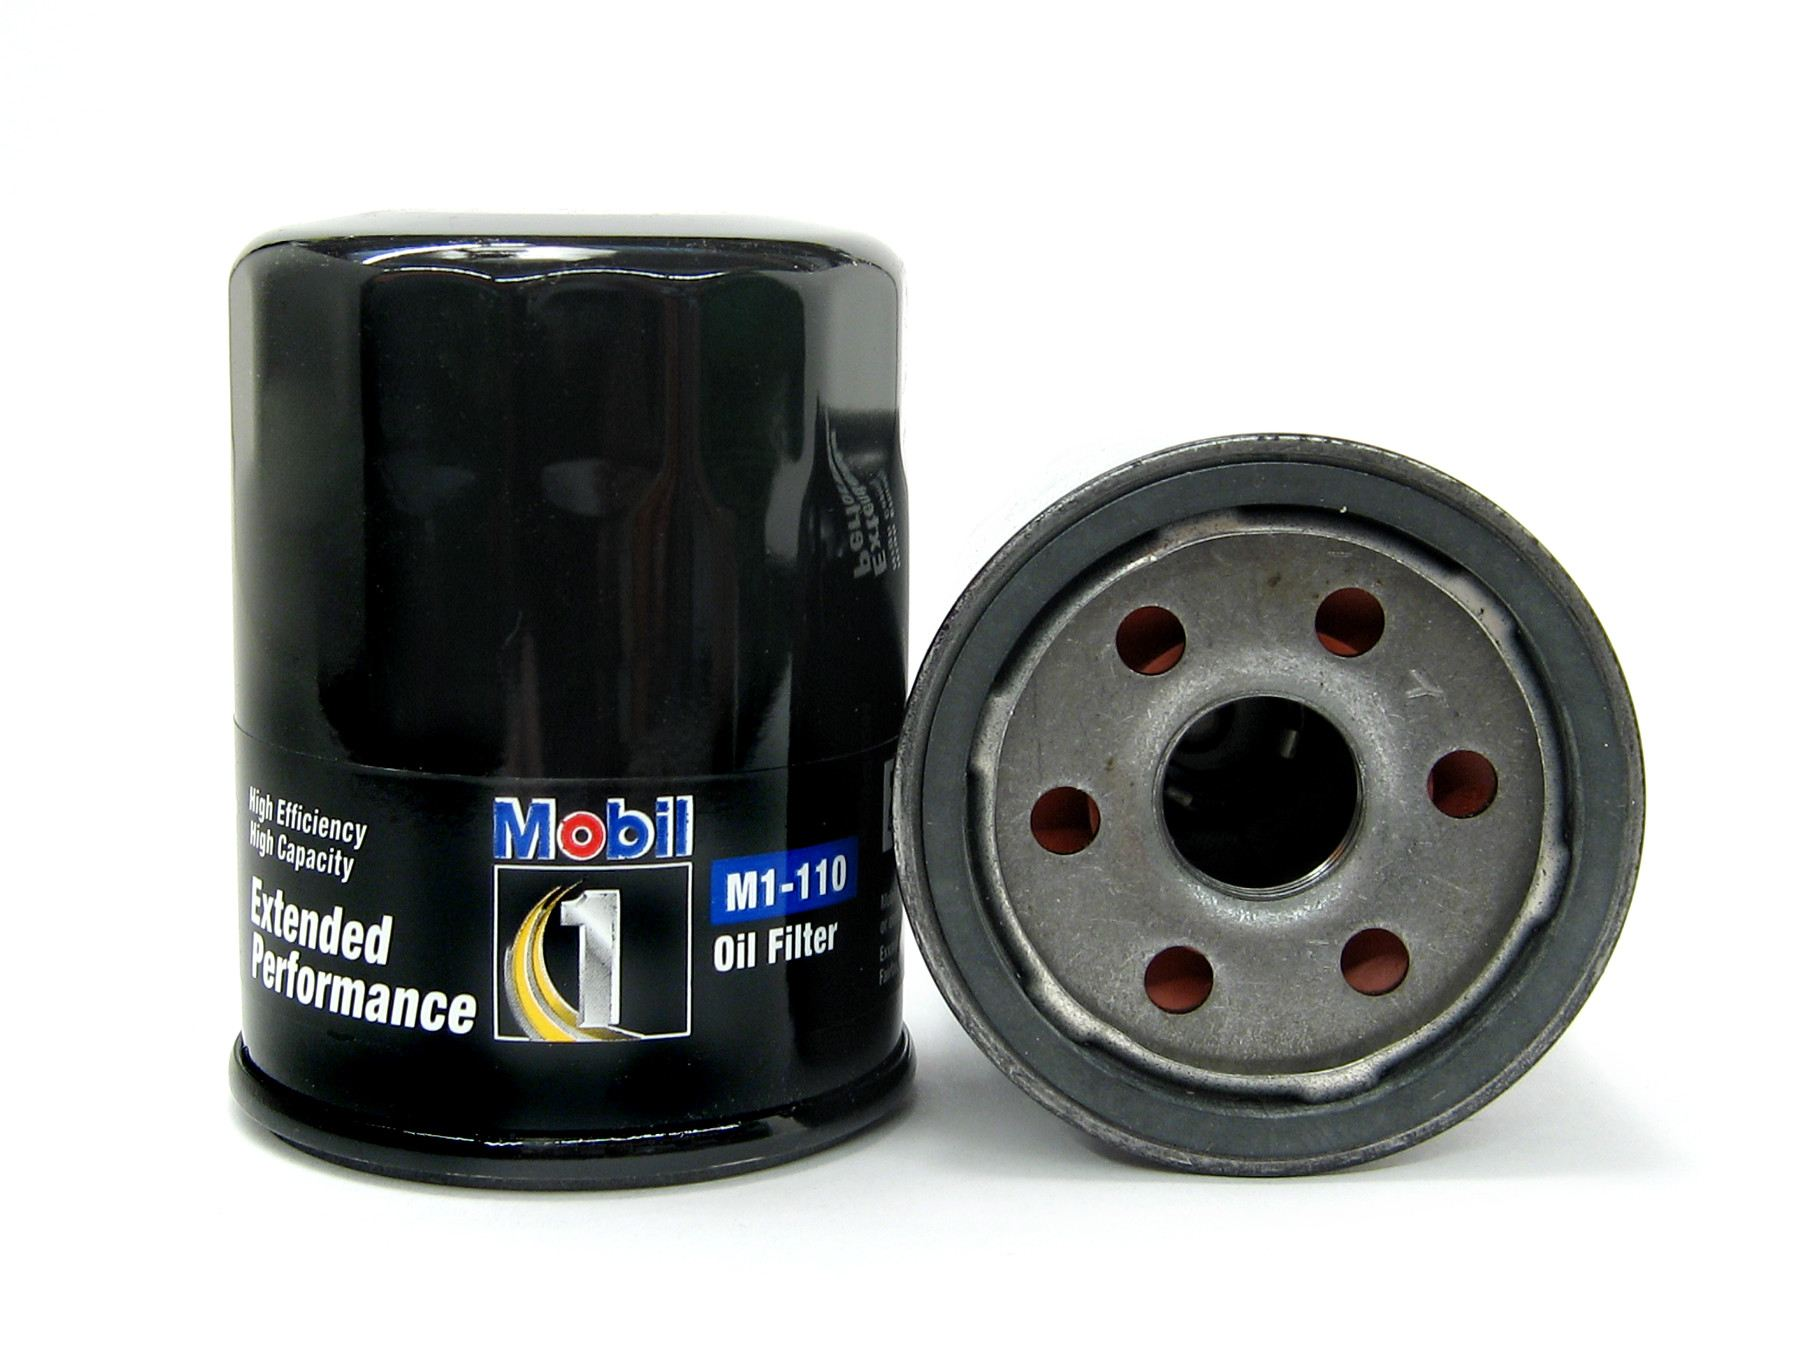 Mobil 1 Oil Filter >> Mobil 1 Engine Oil Filter M1 110 Salvo Auto Parts